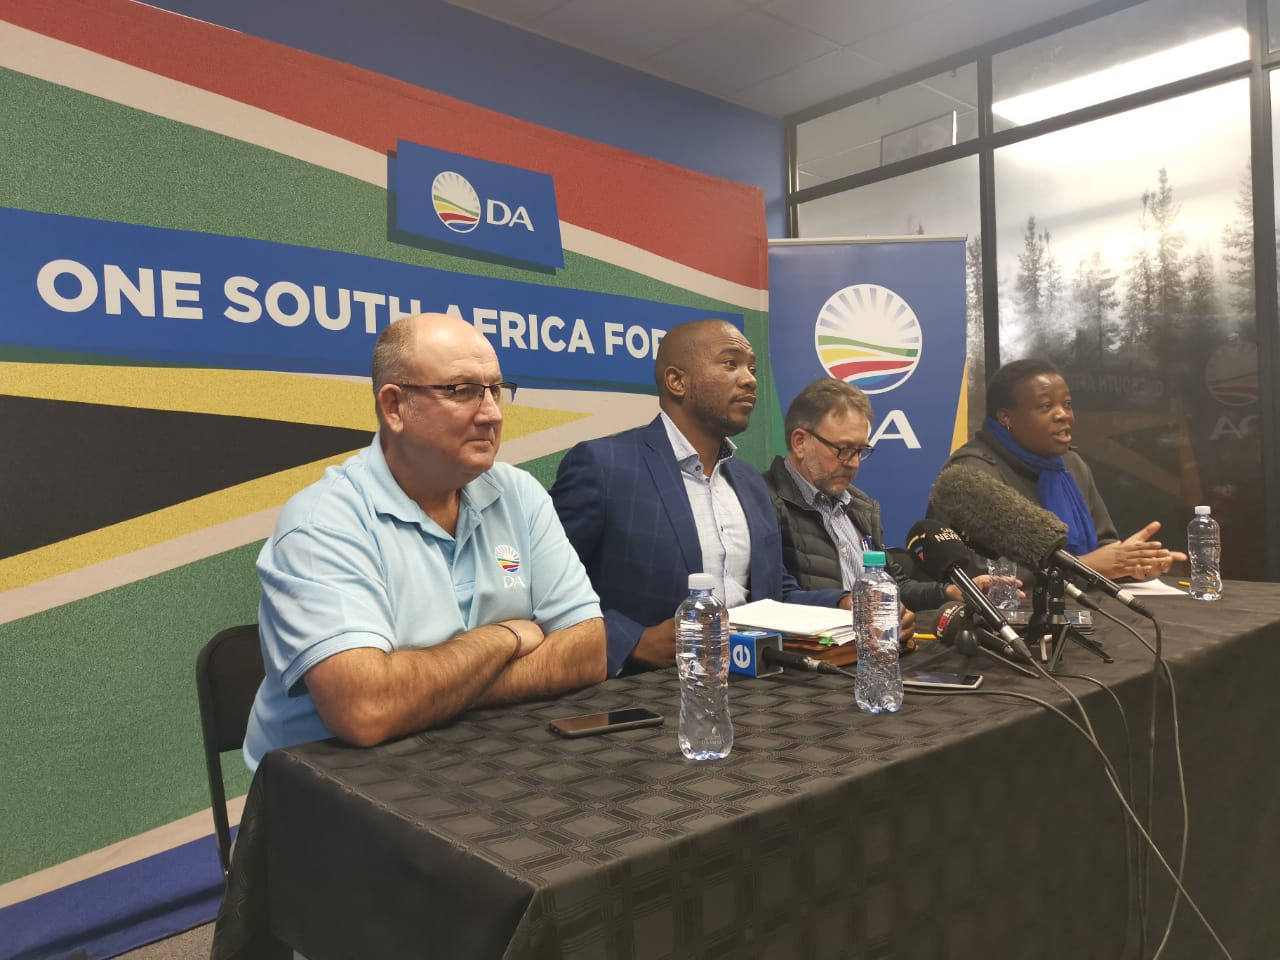 For SA to work the DA has to succeed – and we will